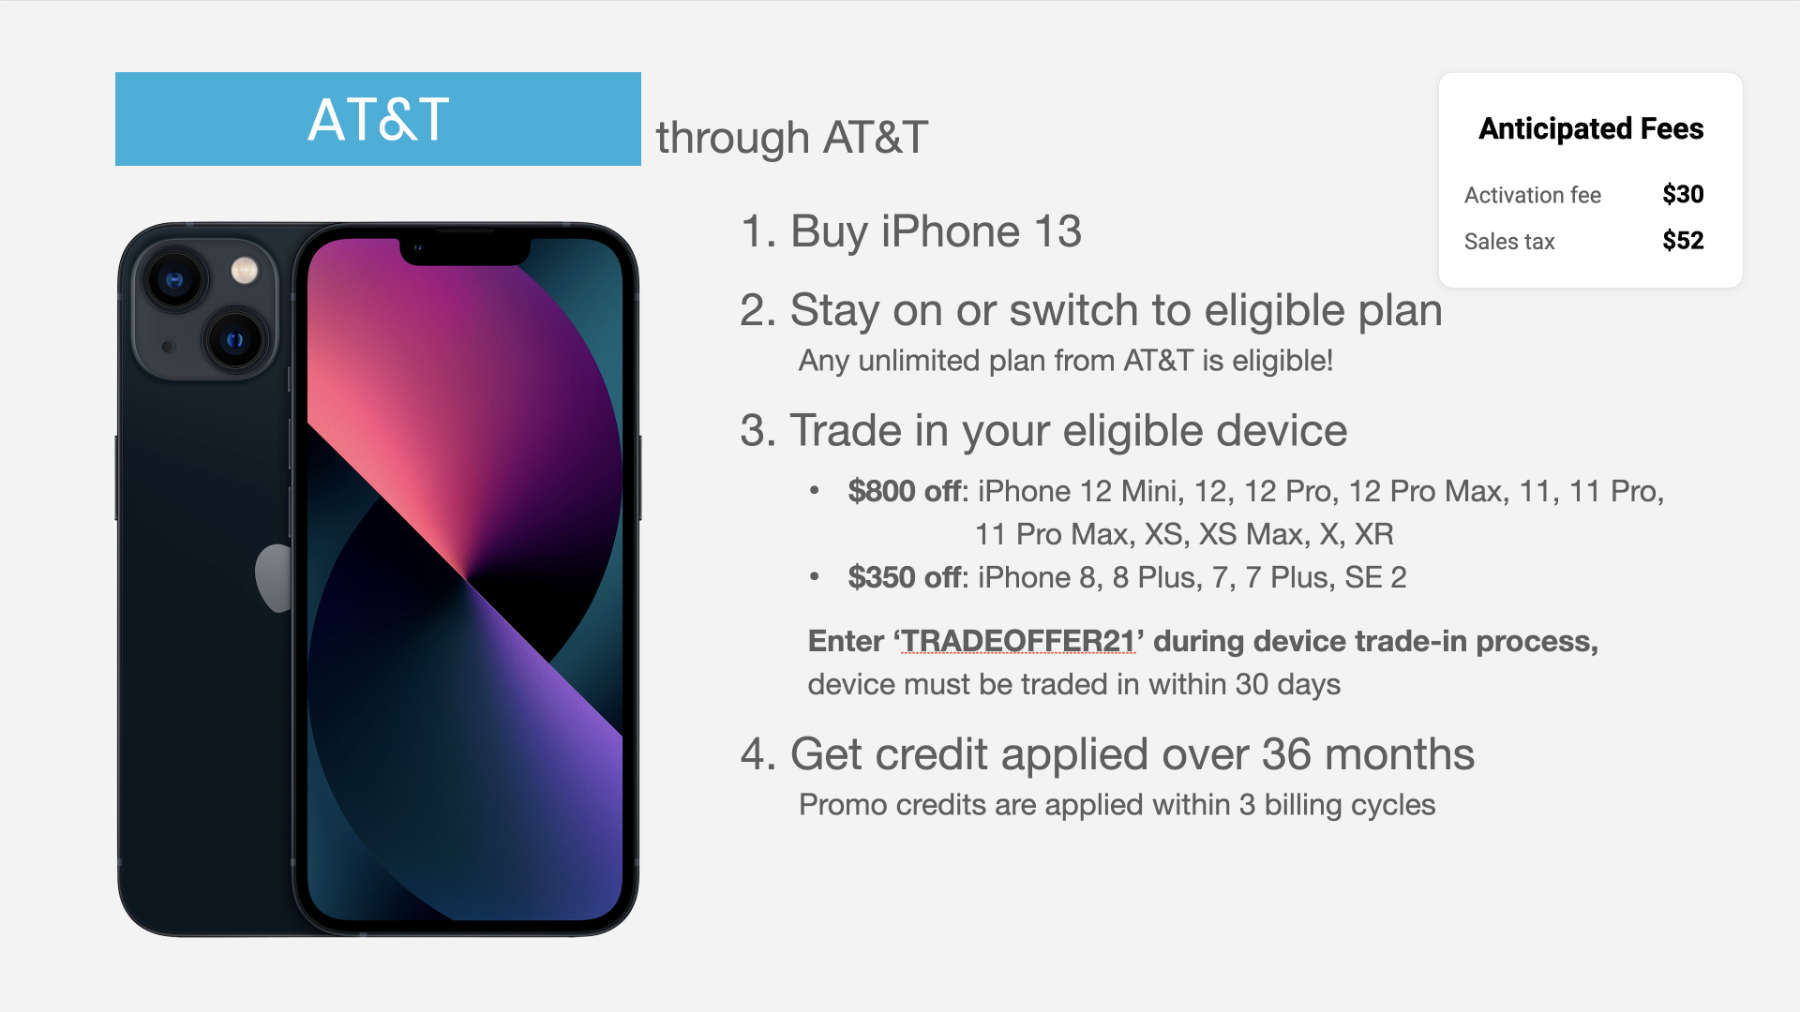 how to get AT&T iPhone 13 trade in deal through AT&T